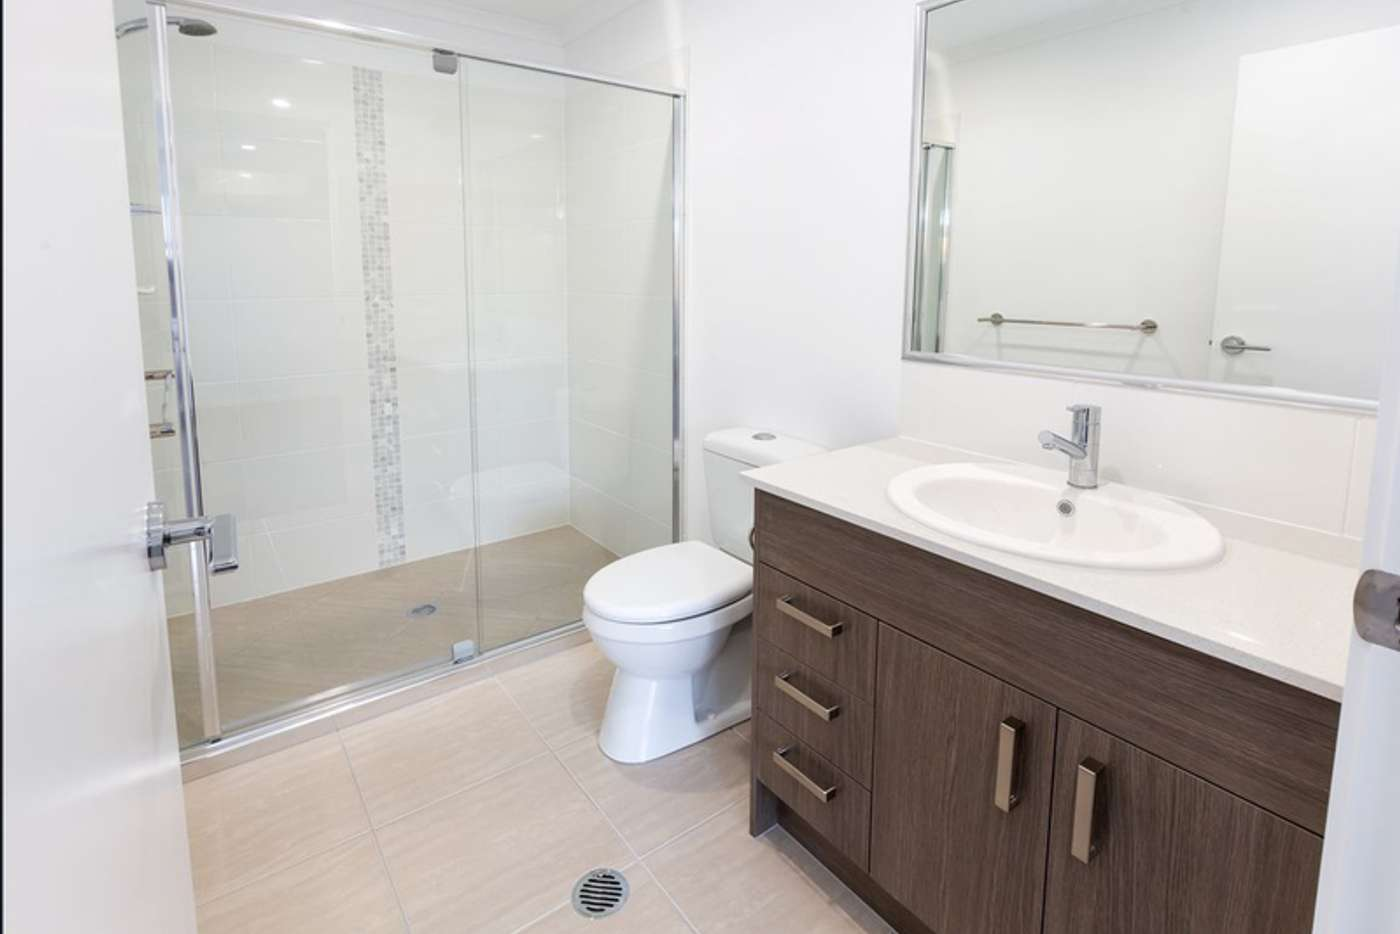 Sixth view of Homely house listing, 1/18 Proteus Street, Burpengary QLD 4505